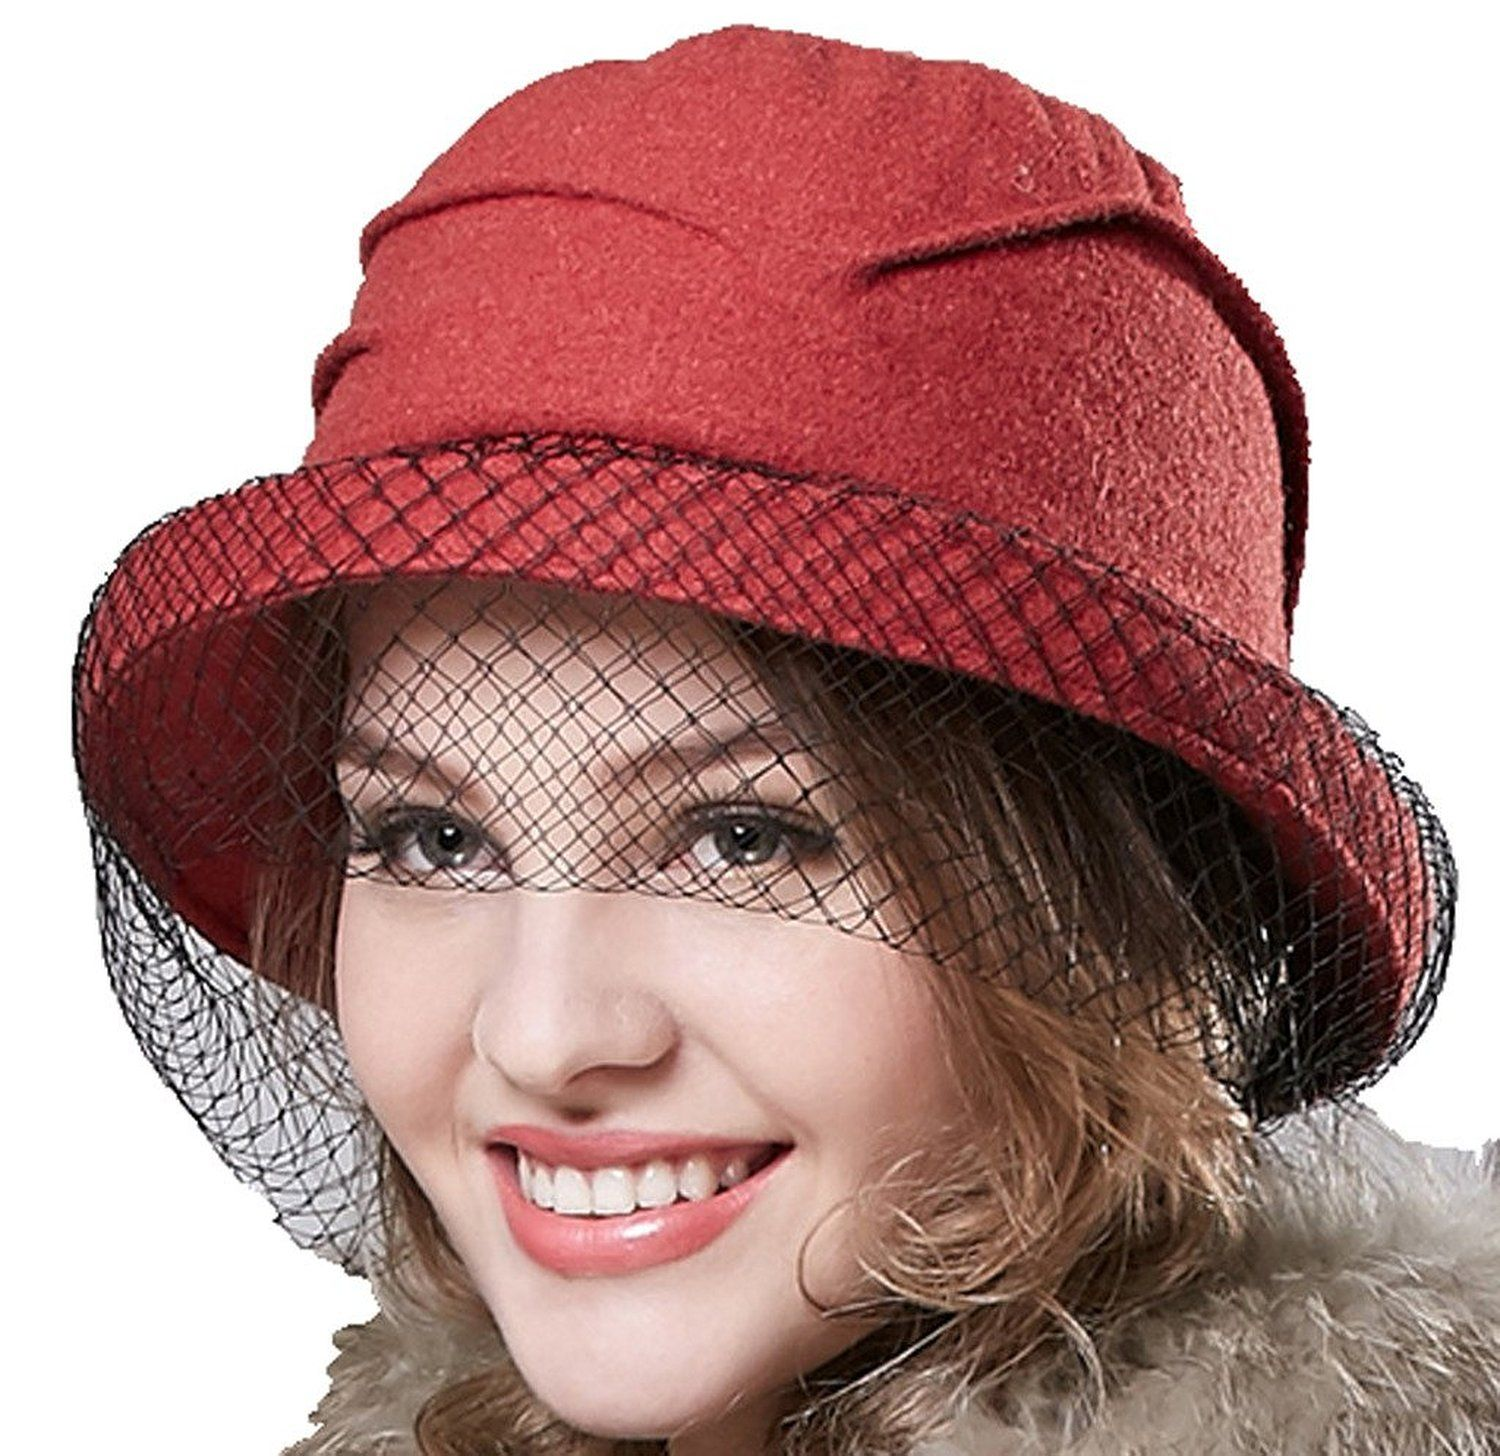 9c4f768e46b93 Supergirl Women s Wool Bucket Hat Cap Fashion Homborg Hat Veil Hat Brown at Amazon  Women s Clothing store